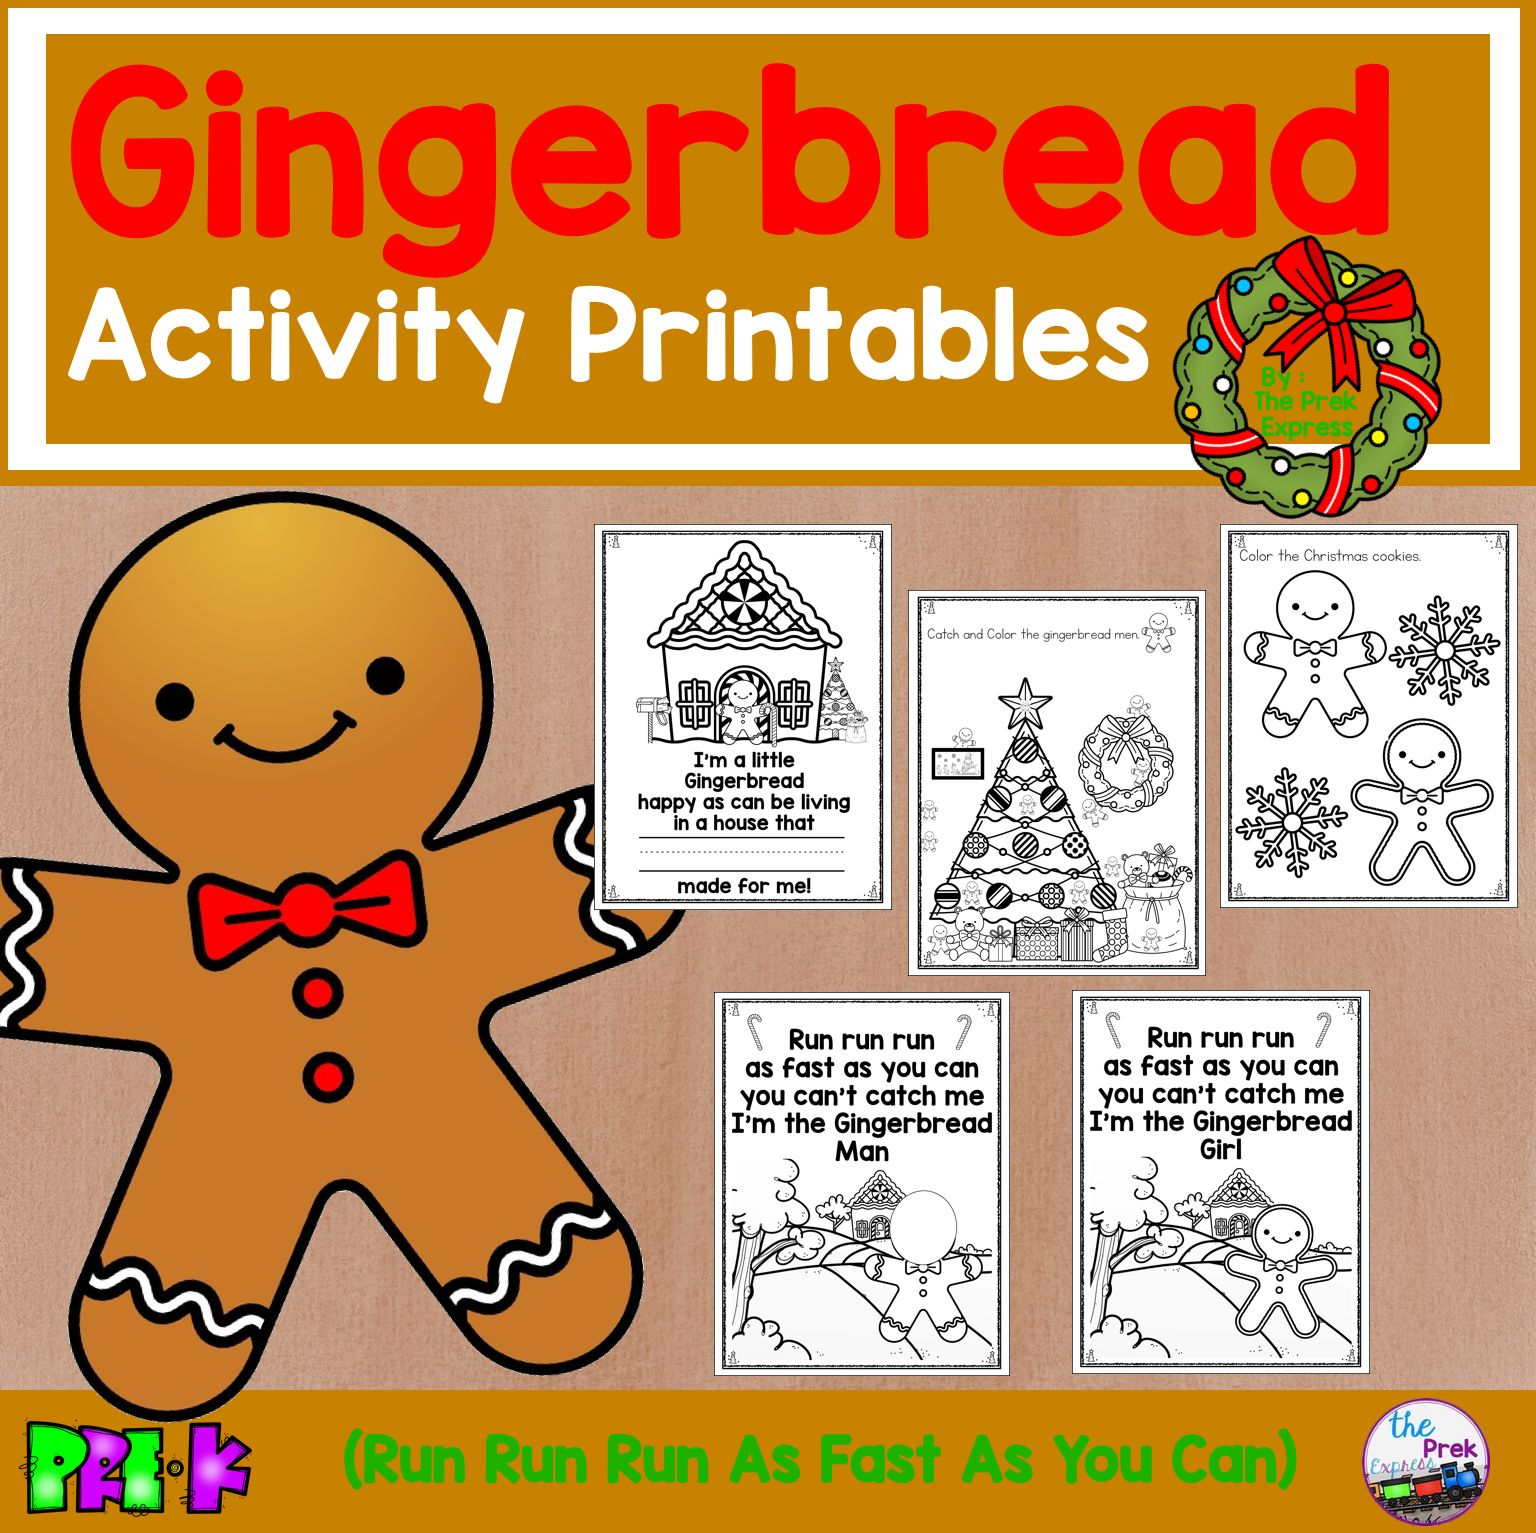 Gingerbread Activity Printables In